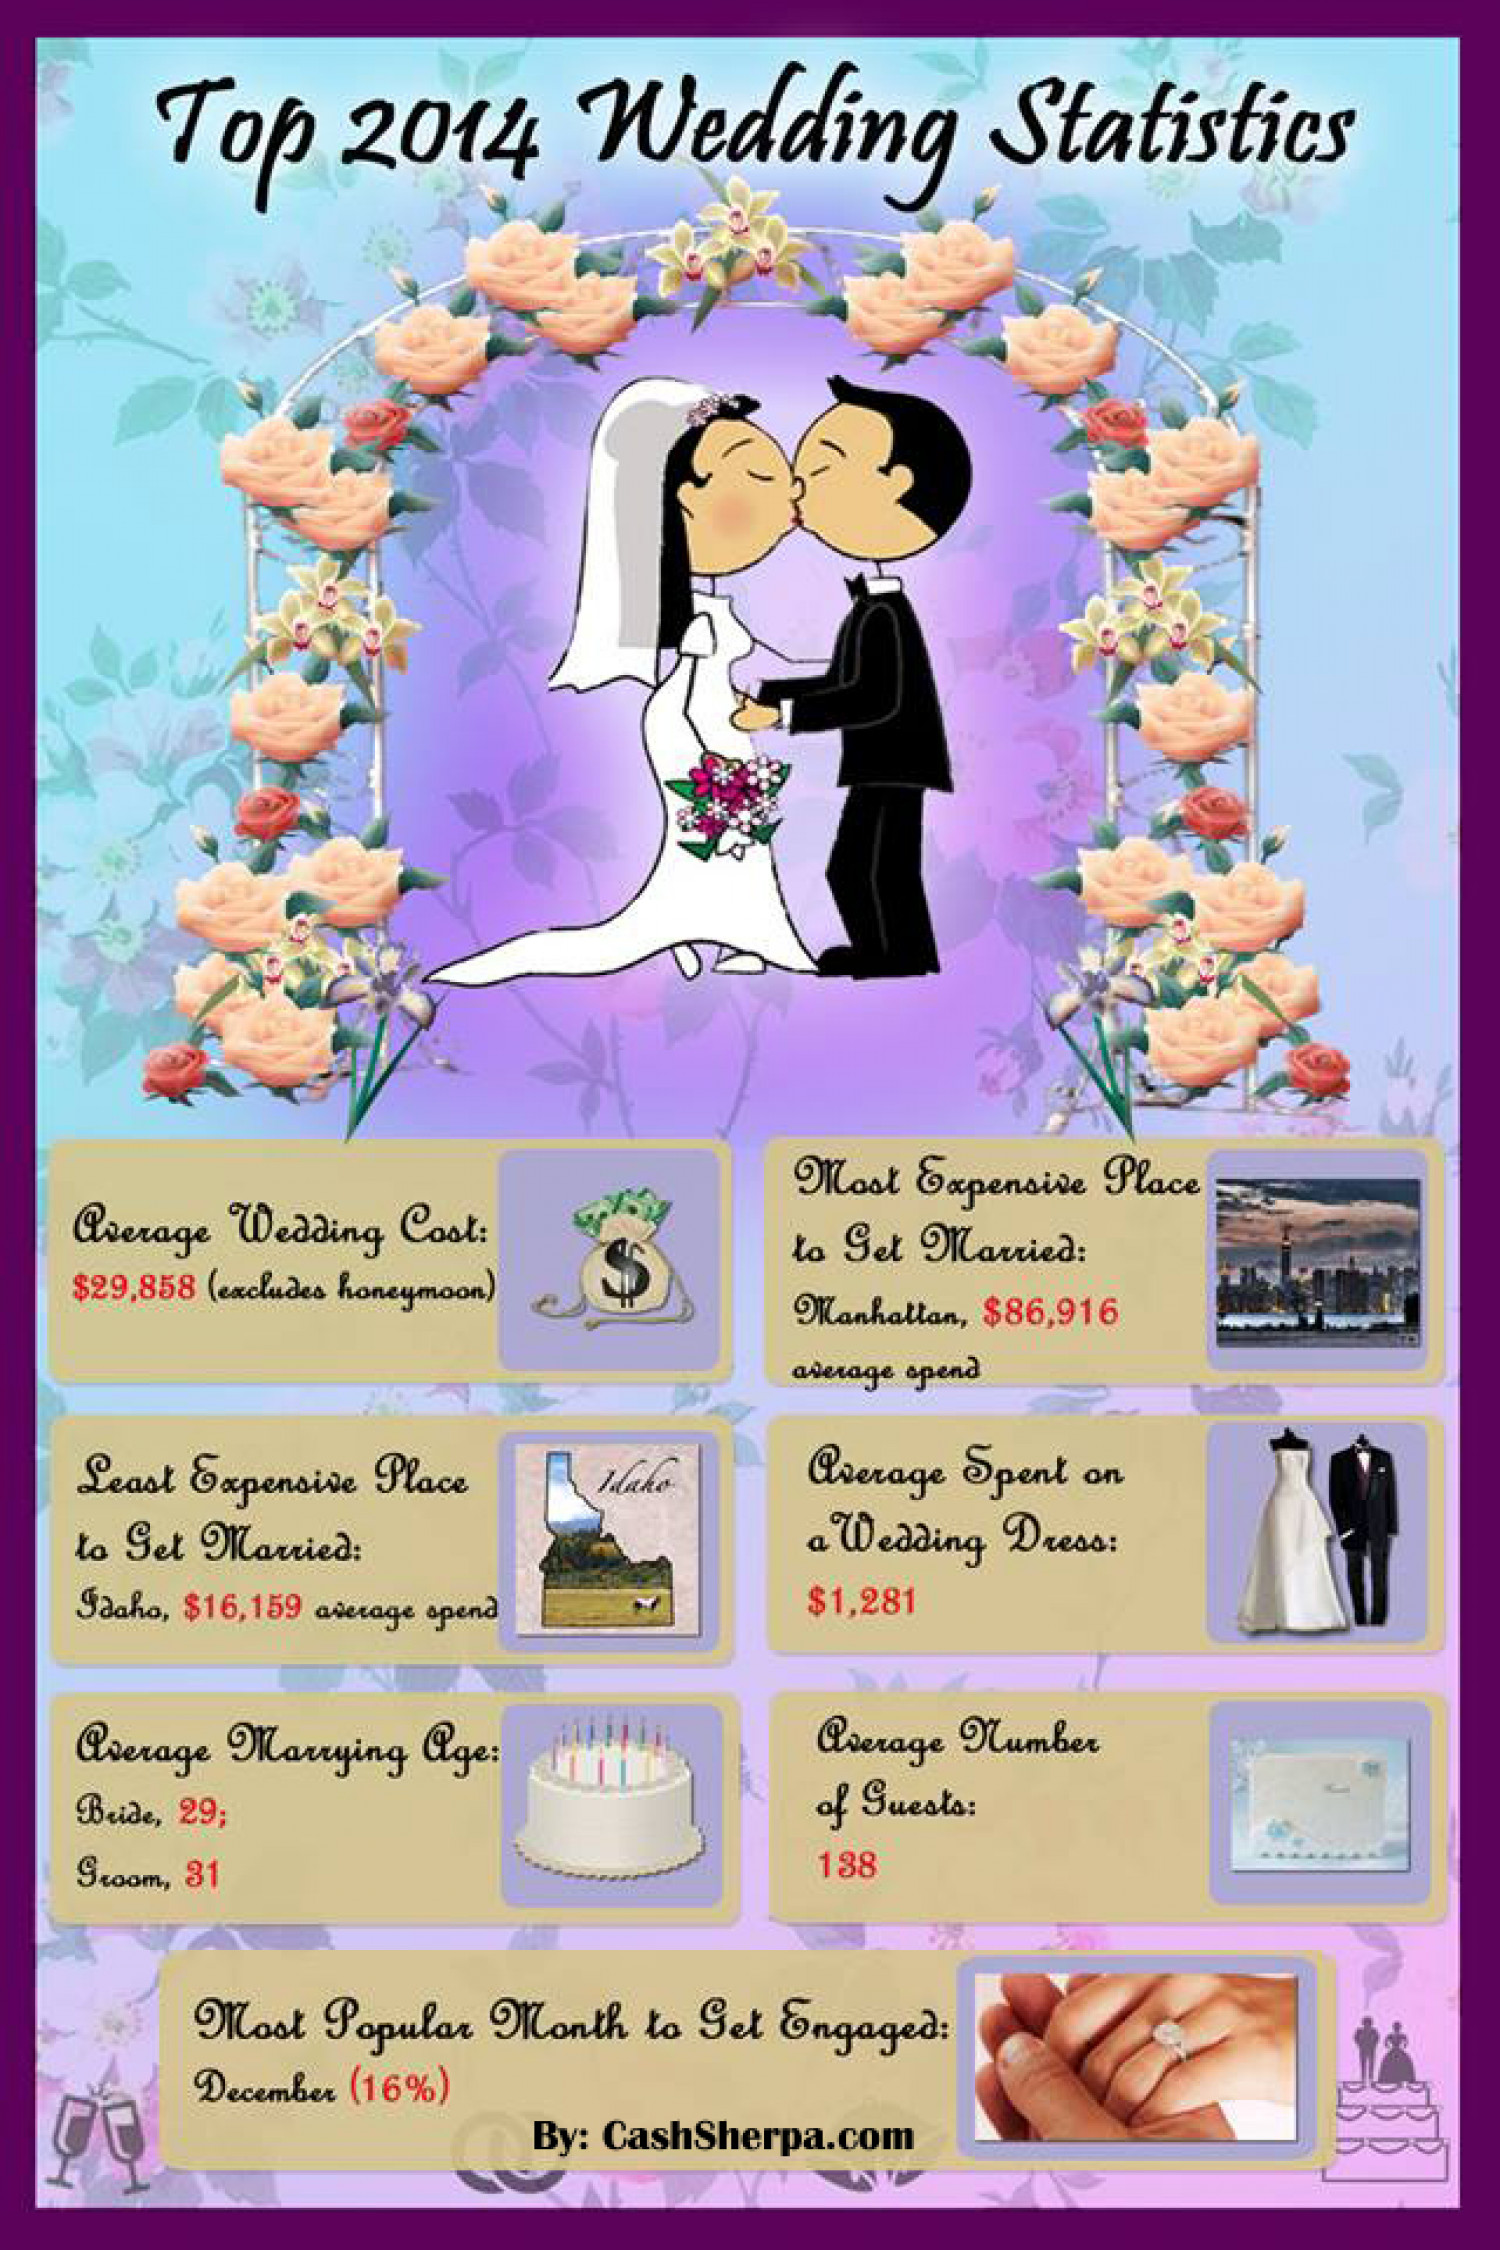 The 2014 Wedding Statistics Infographic